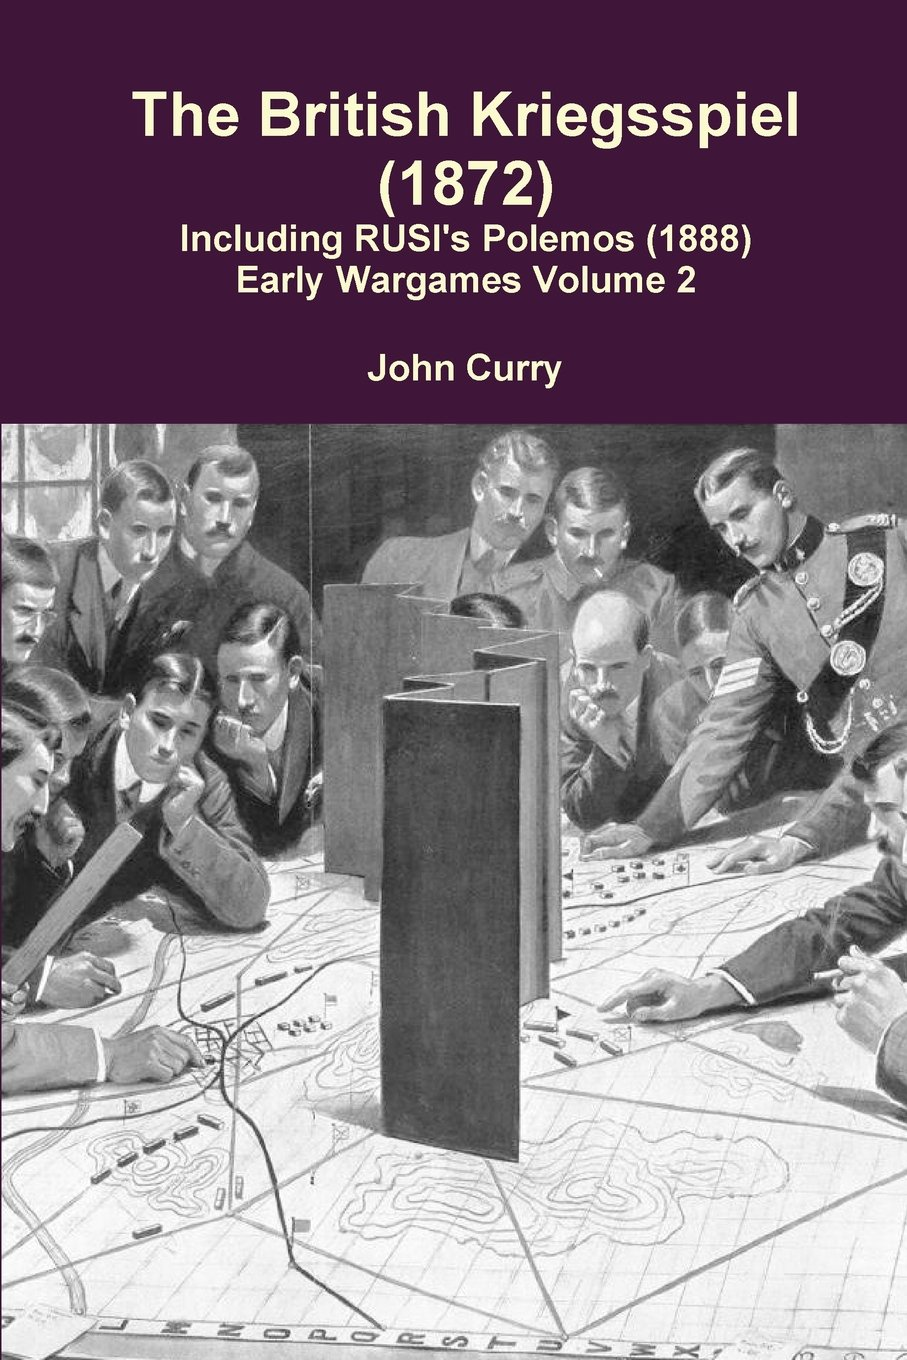 The British Kriegsspiel (1872) Including Rusi's Polemos (1888) Early Wargames Volume 2 Text fb2 book